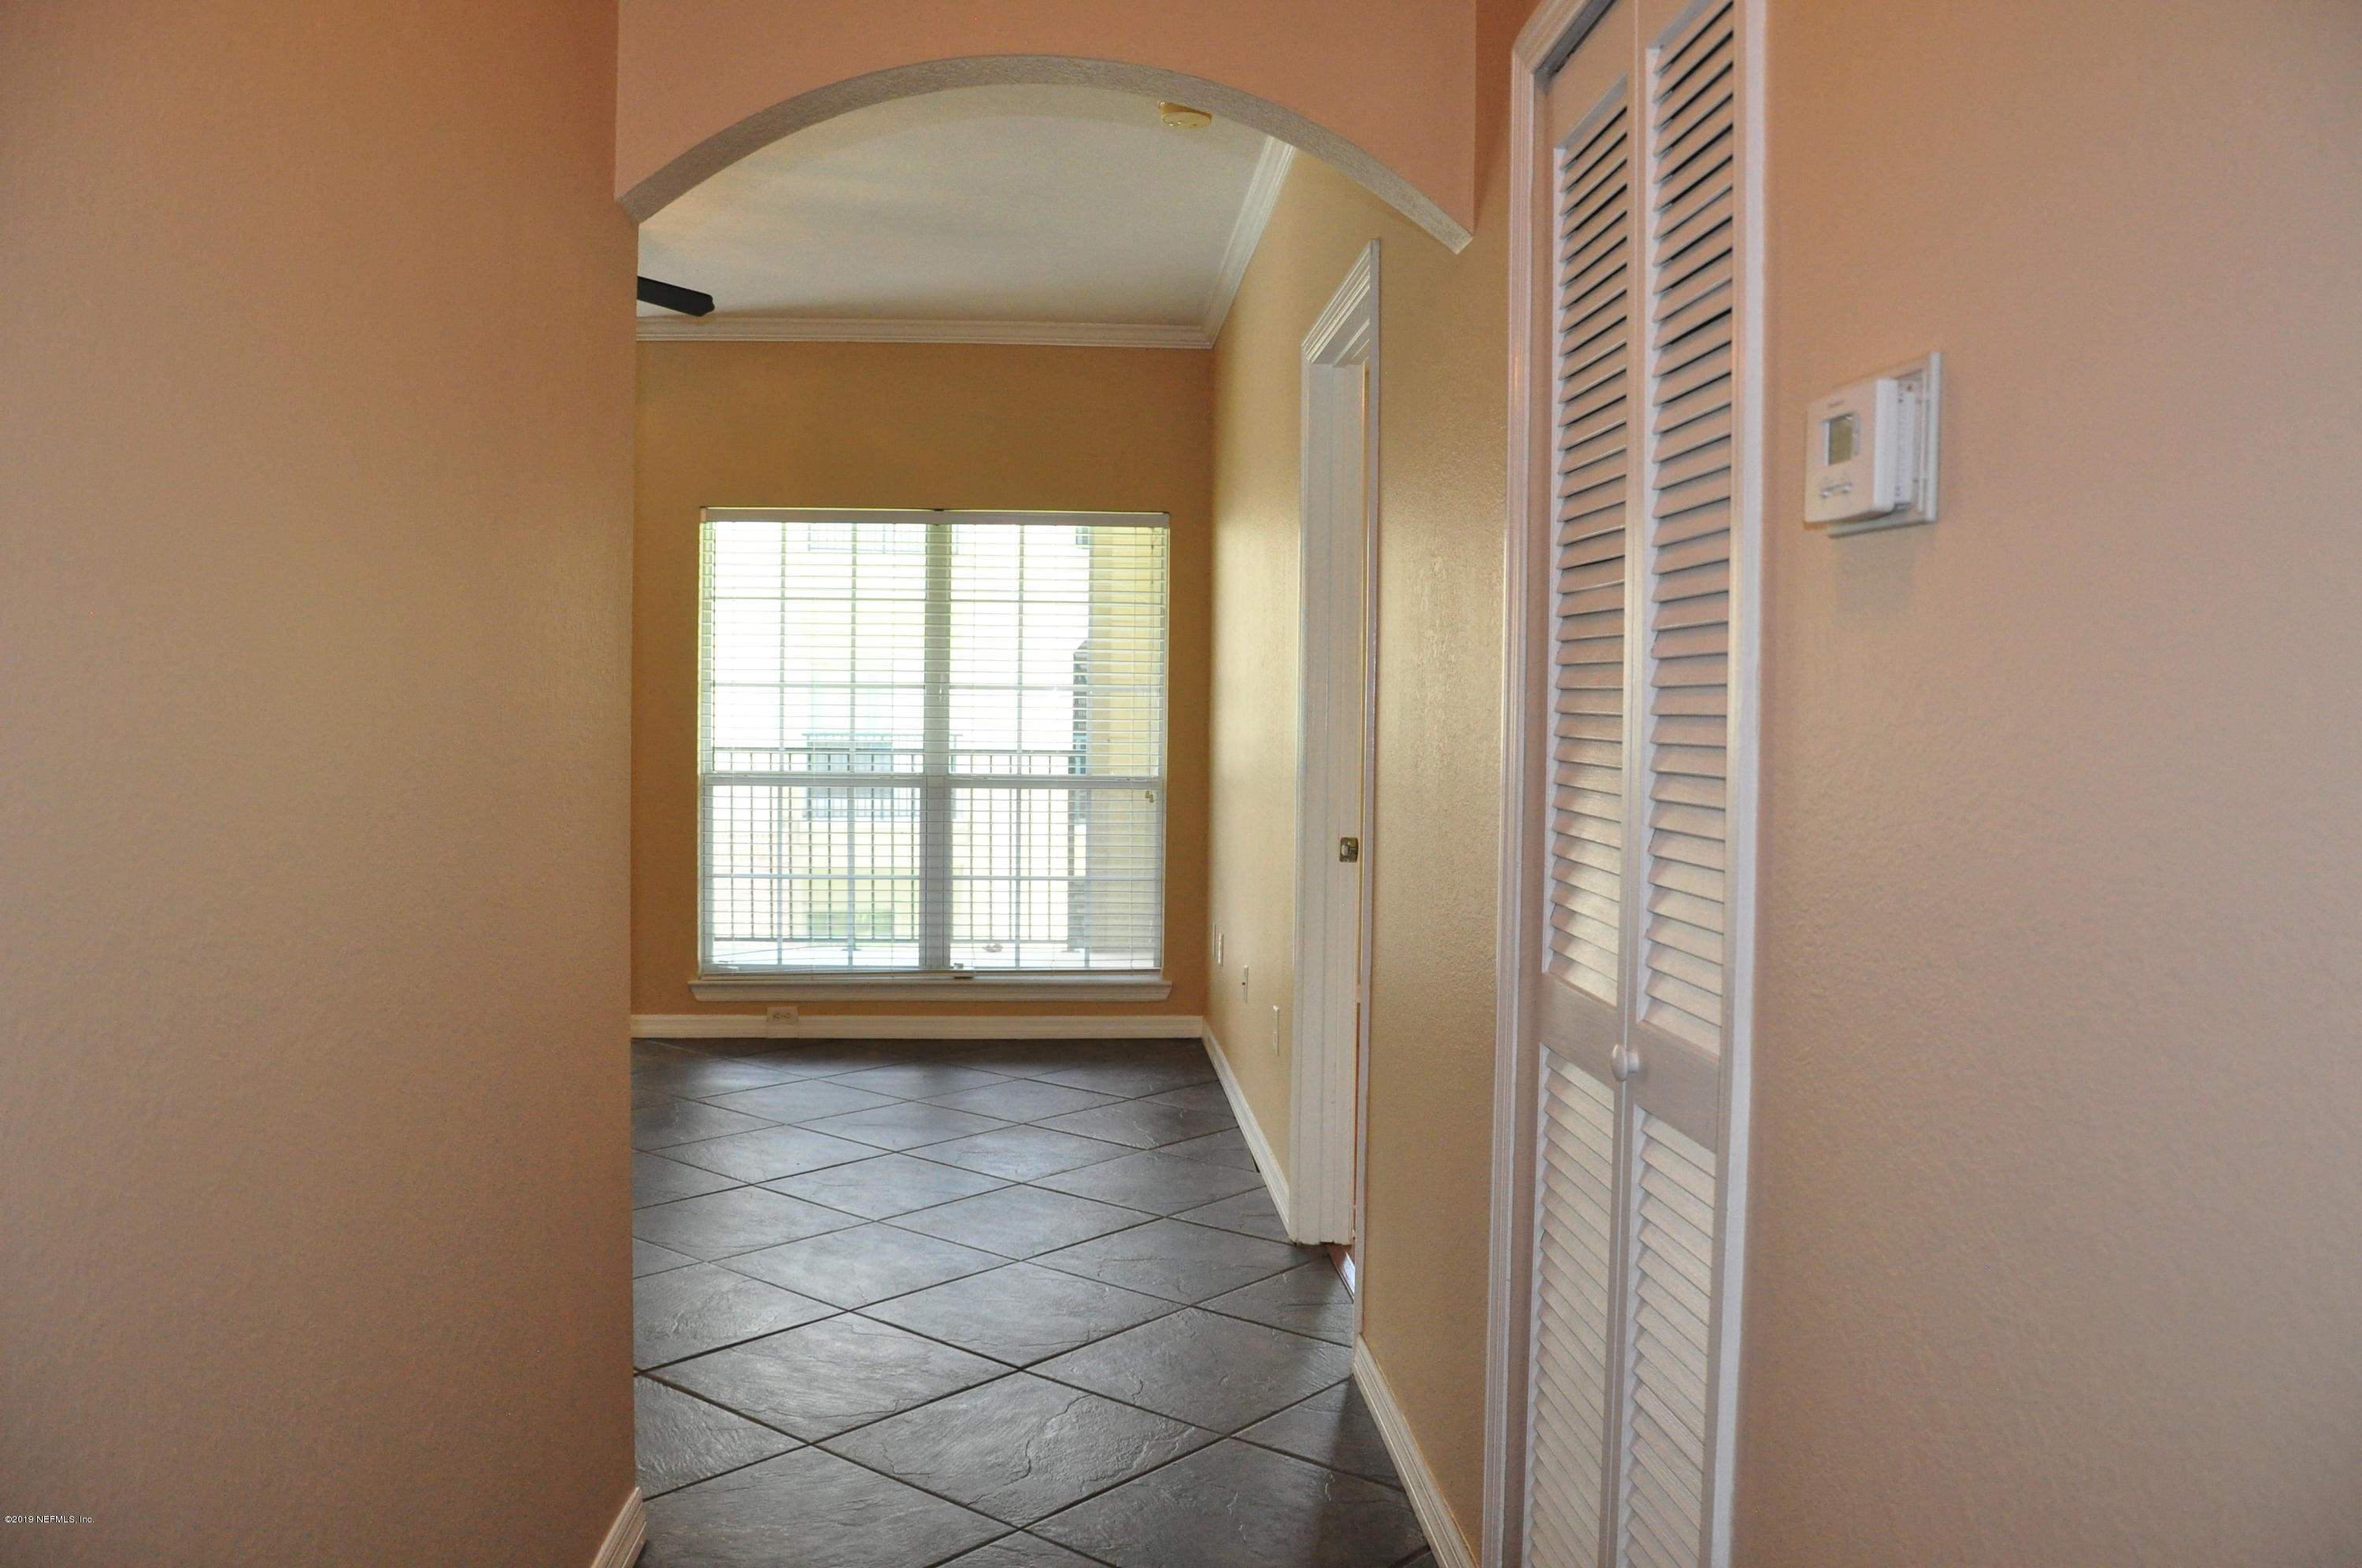 7800 POINT MEADOWS, JACKSONVILLE, FLORIDA 32256, 2 Bedrooms Bedrooms, ,2 BathroomsBathrooms,Condo,For sale,POINT MEADOWS,1002866